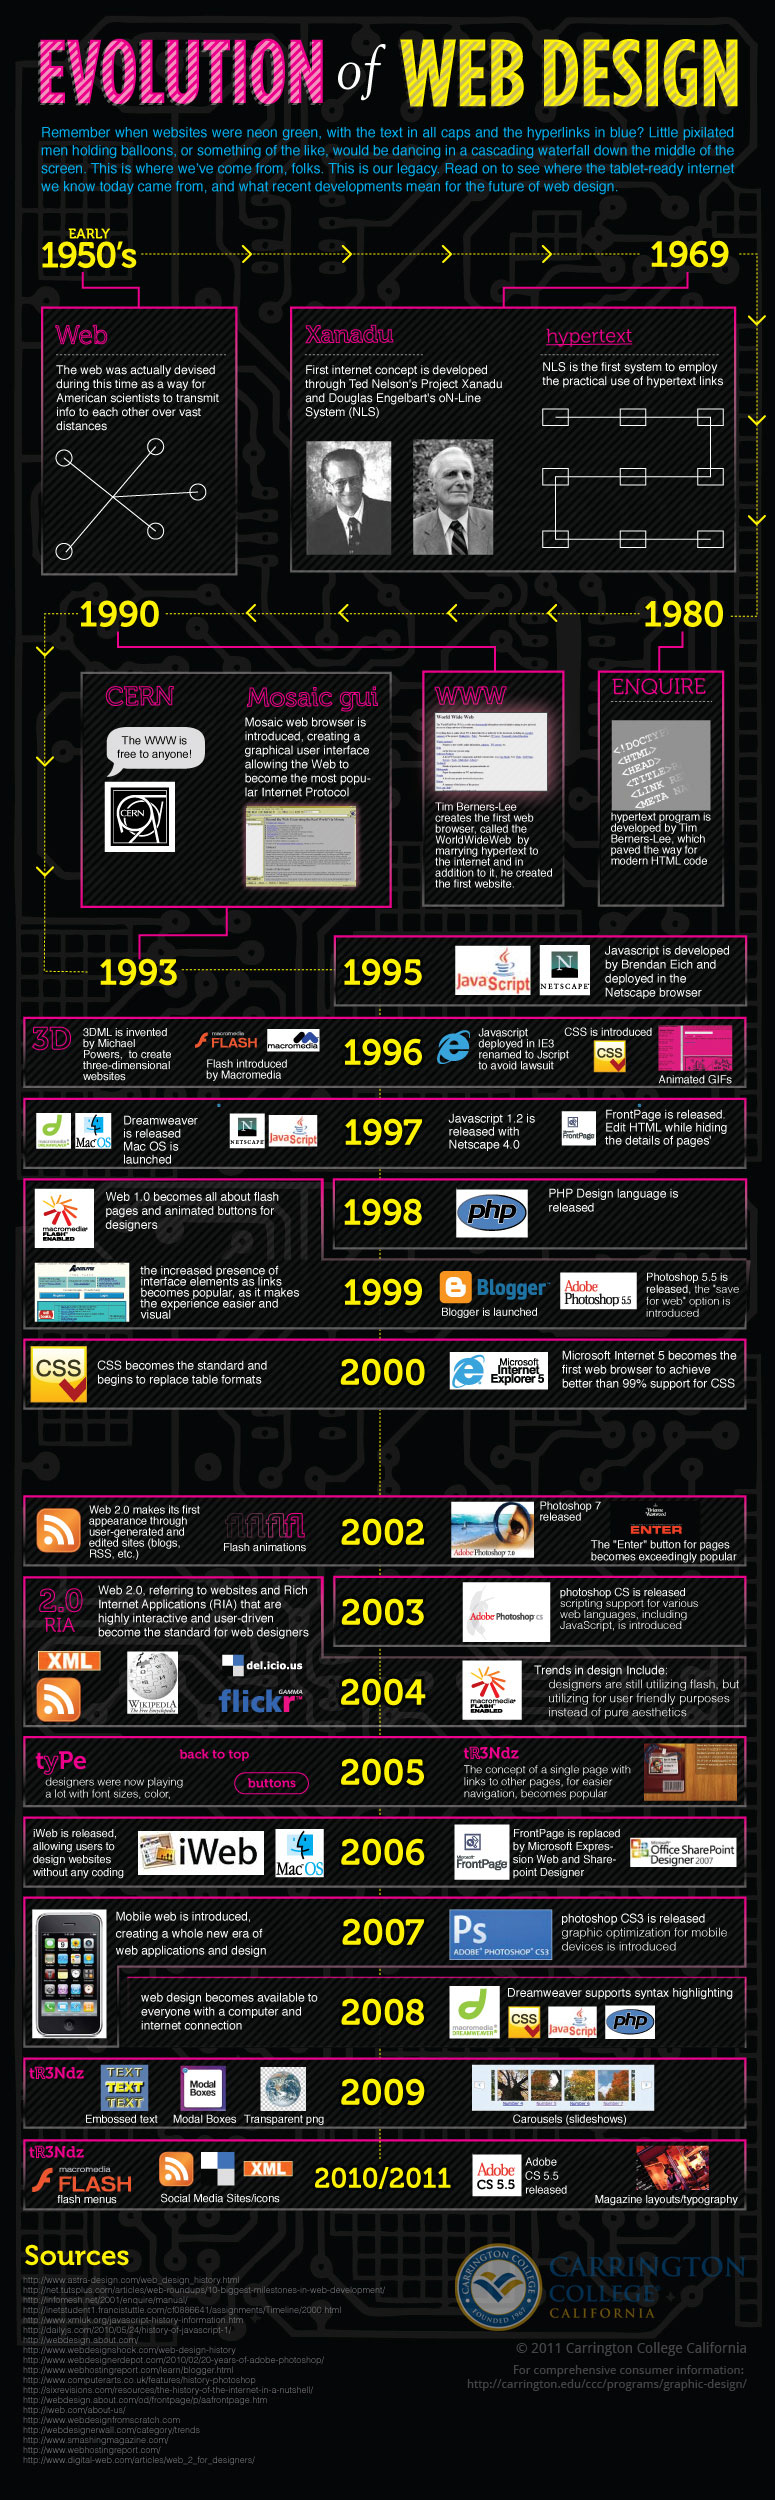 Design Evolution On The Web Explained [Infographic]